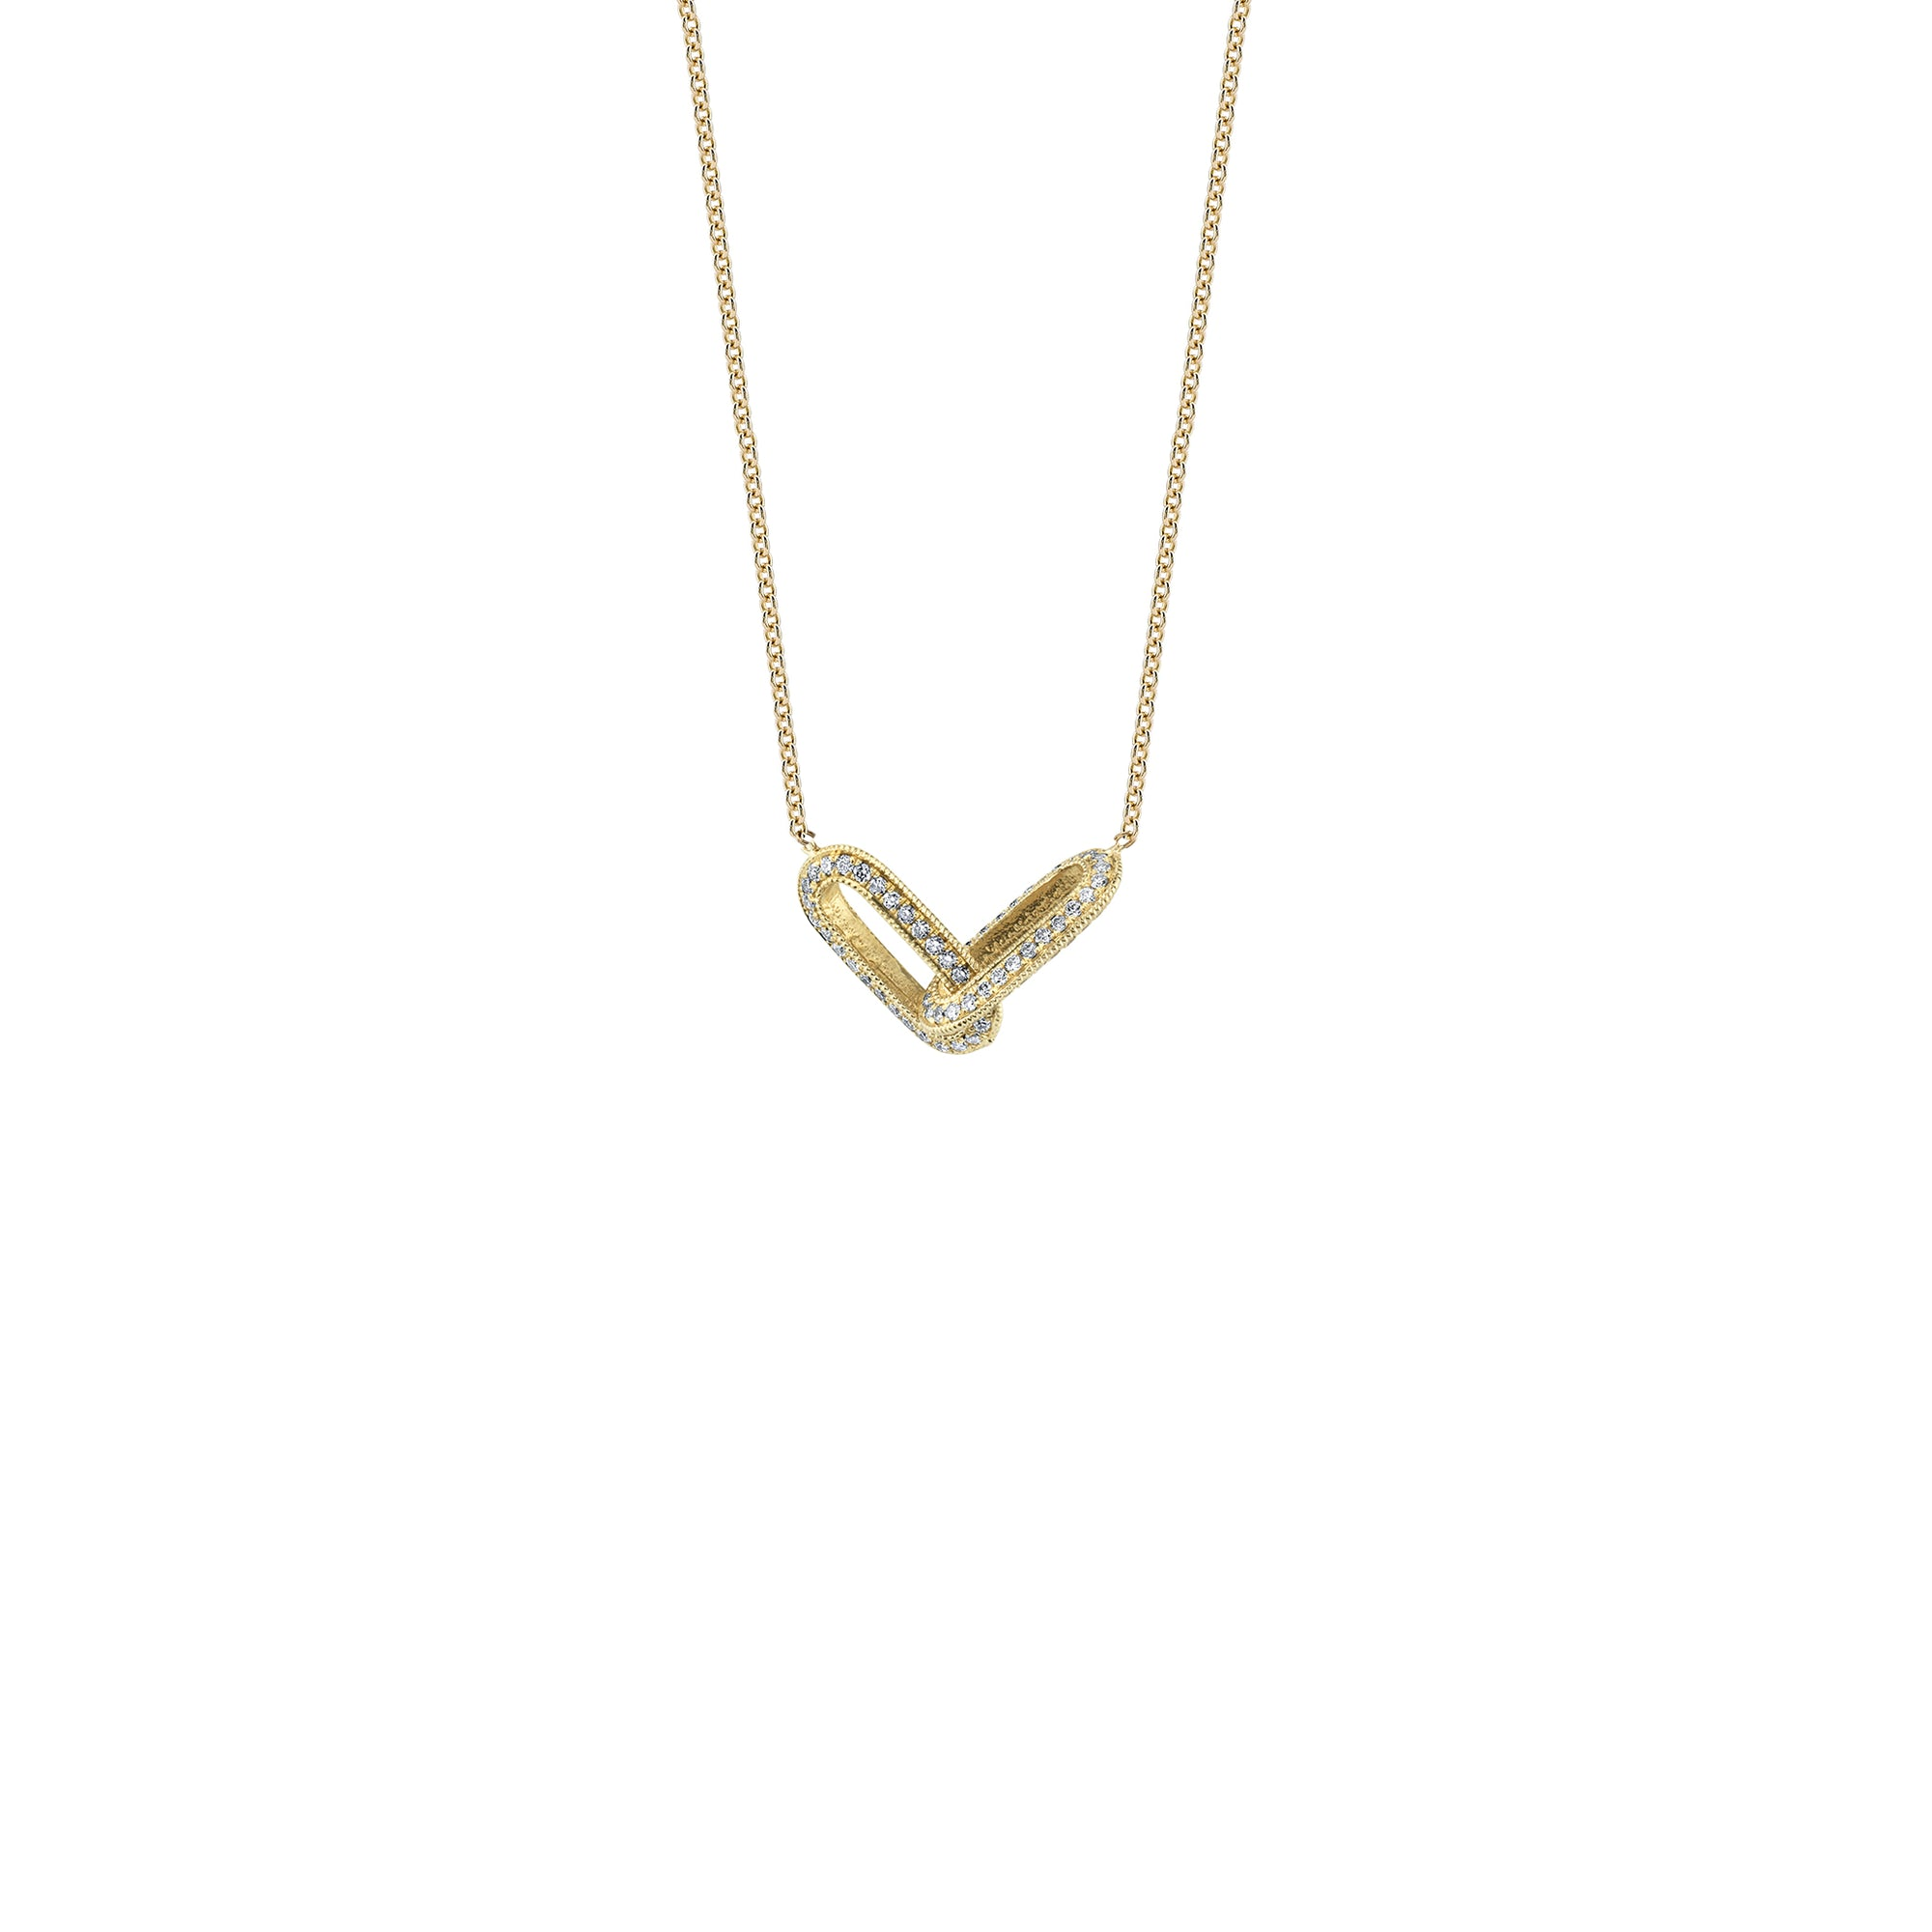 Pave Linked Necklace